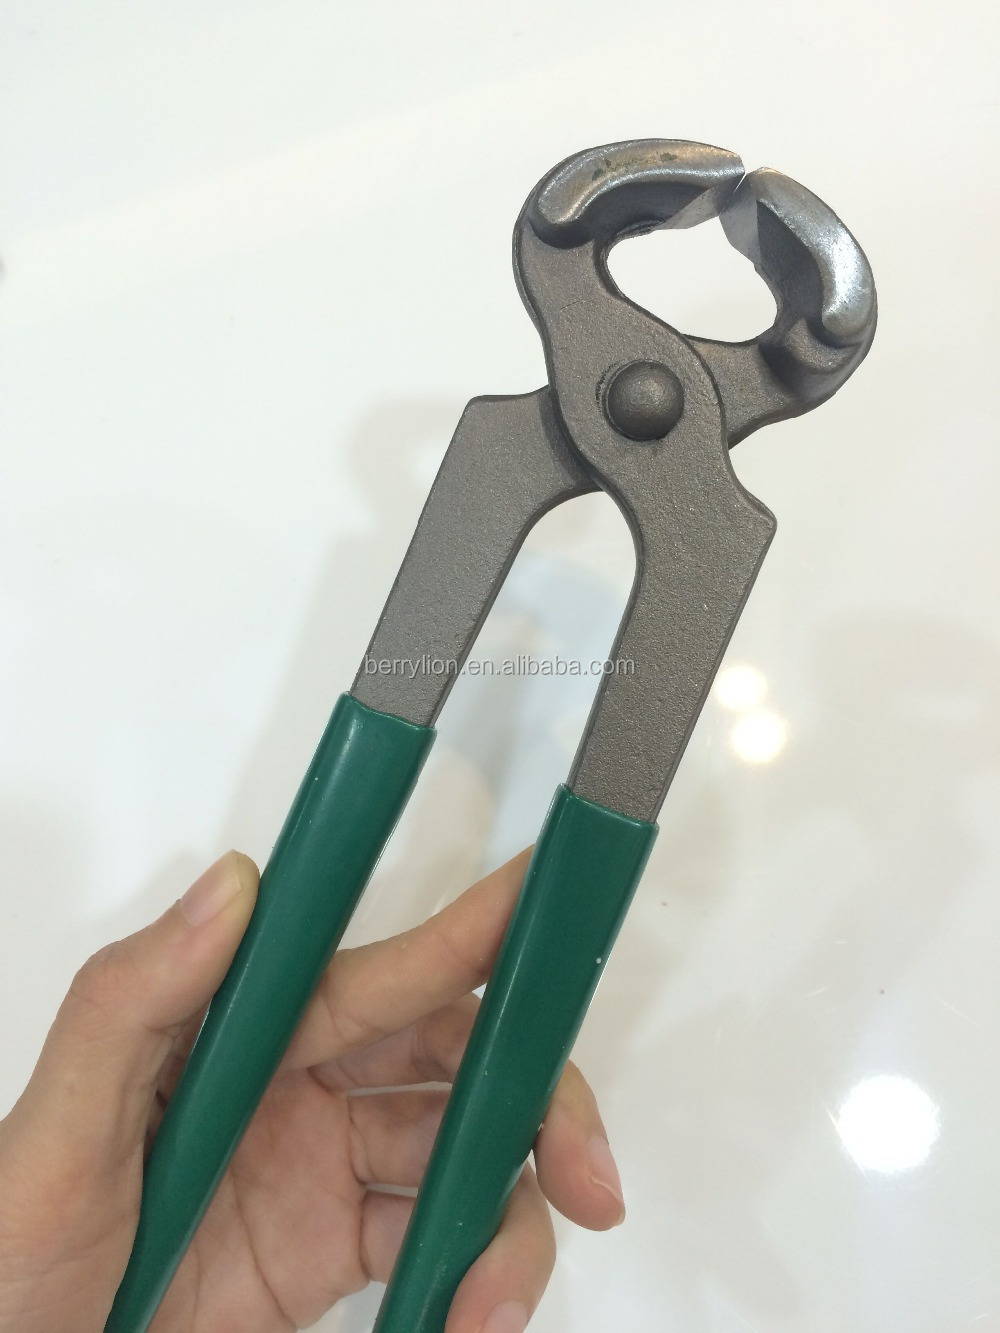 200mm professional nail pulling pliers, green color nutcracker plier